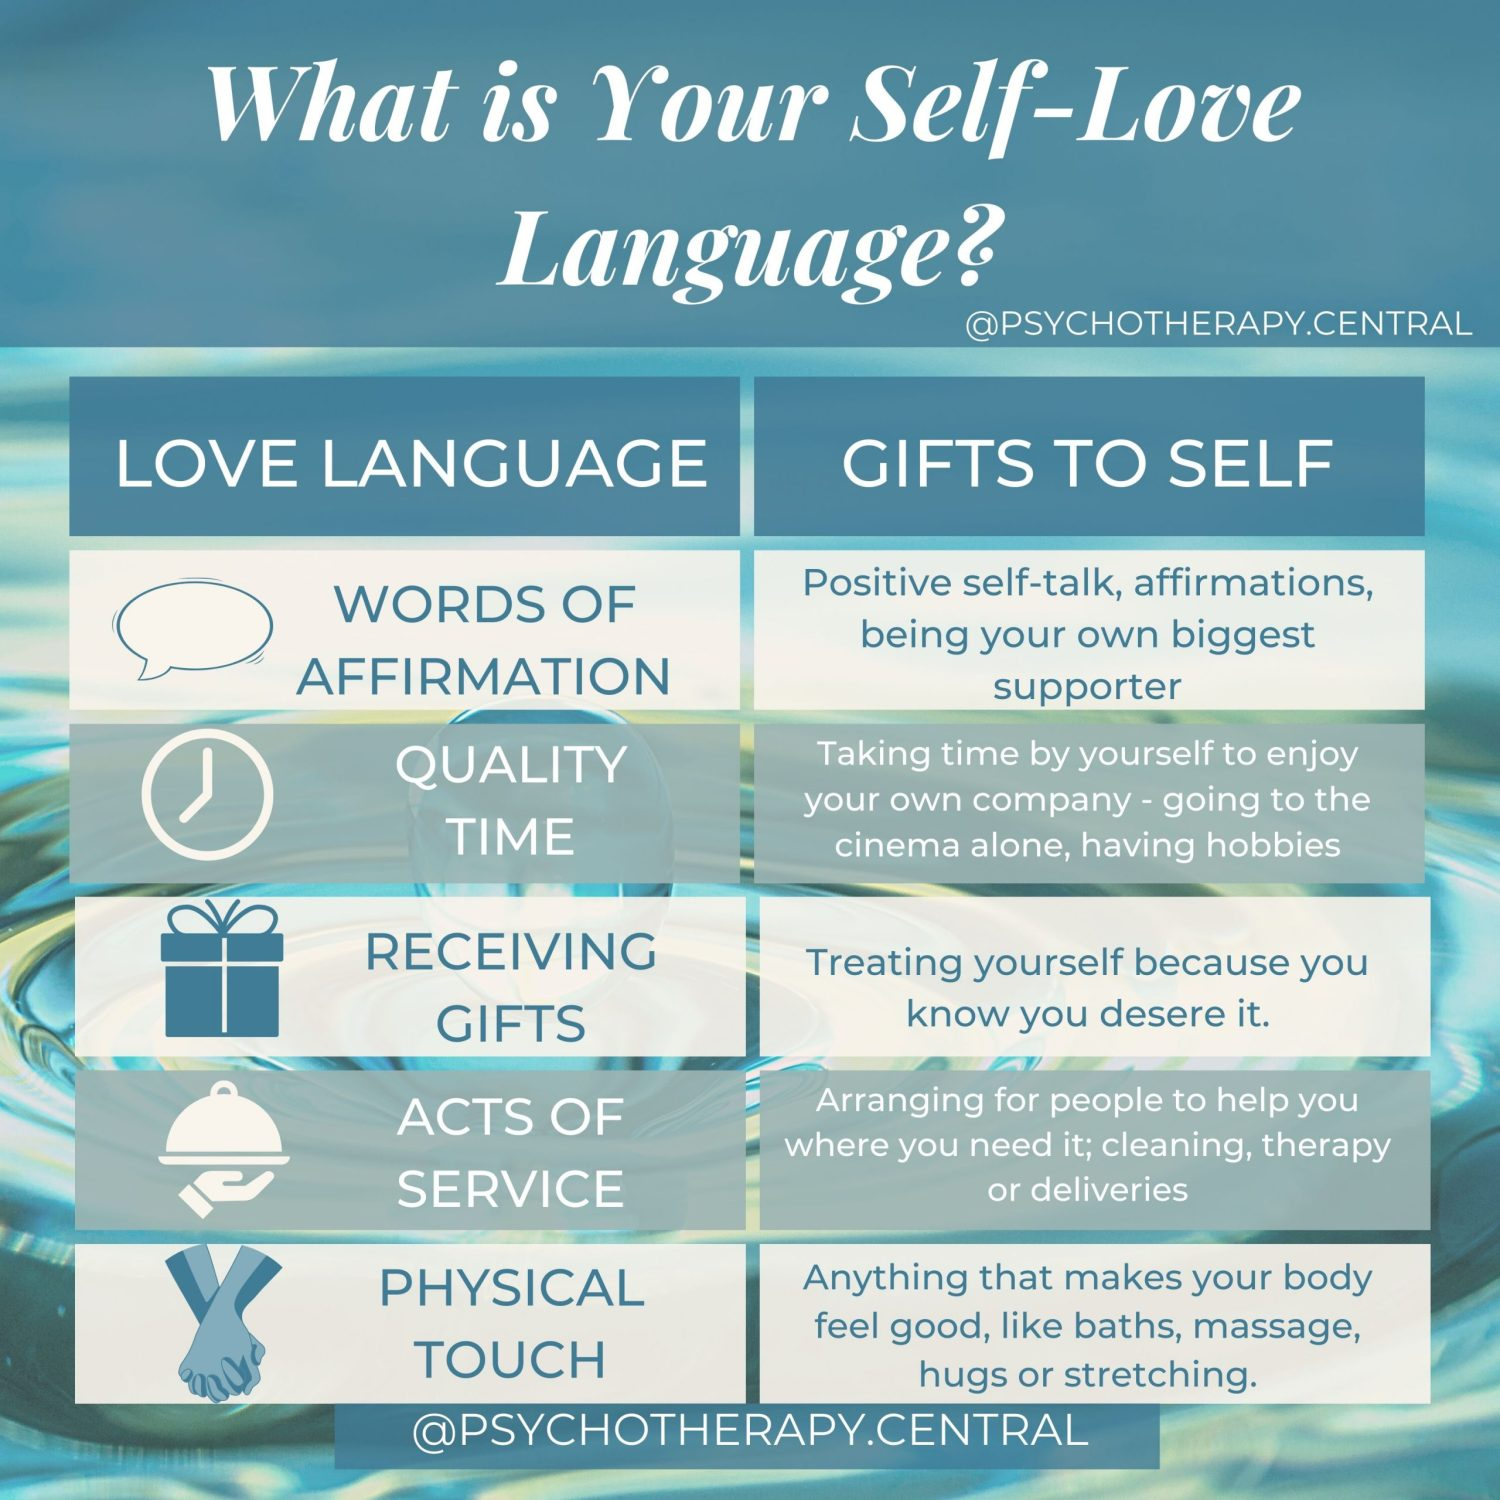 what is your self-love language